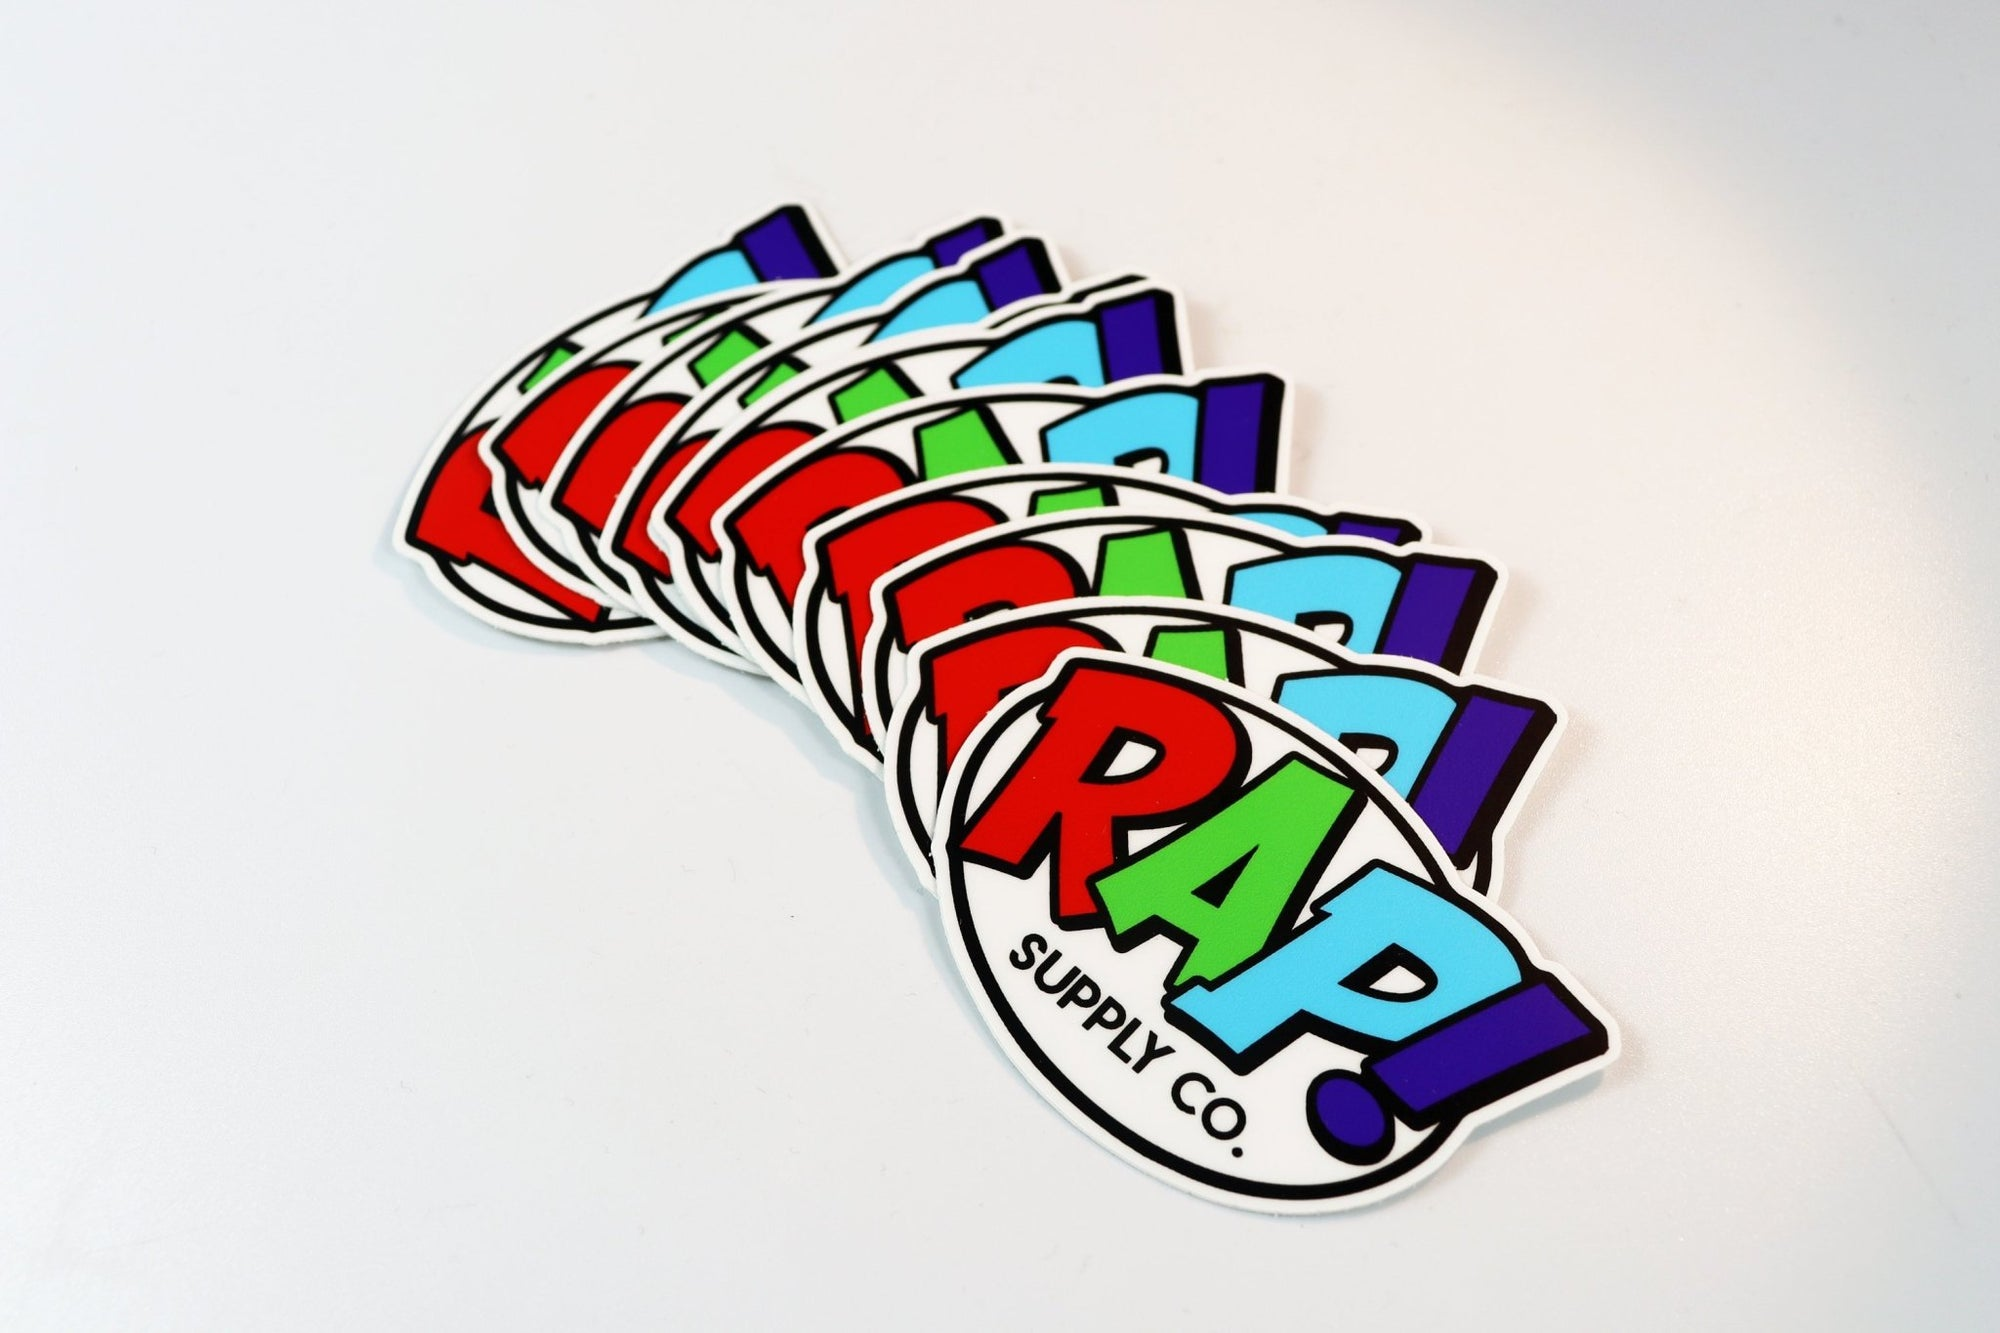 Rap Supply Co Sticker! - Rap Supply Co